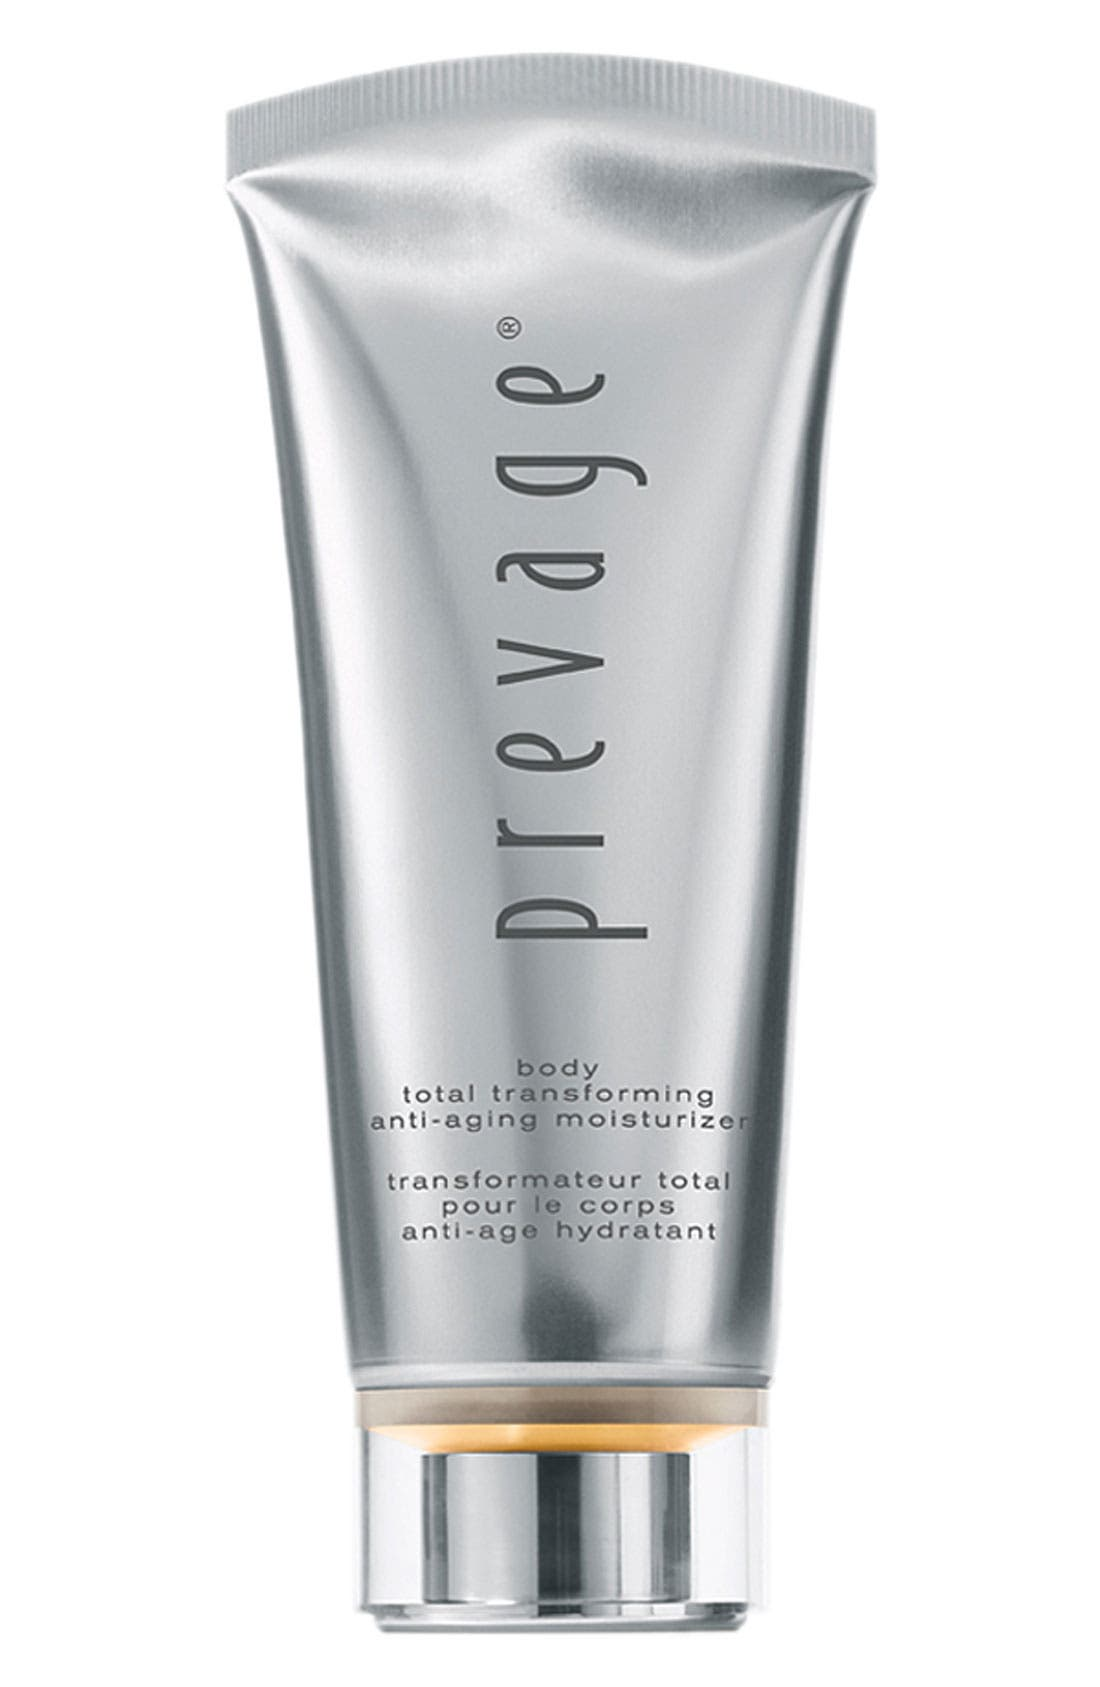 ELIZABETH ARDEN,                             PREVAGE<sup>®</sup> Body Total Transforming Anti-Aging Moisturizer,                             Main thumbnail 1, color,                             000